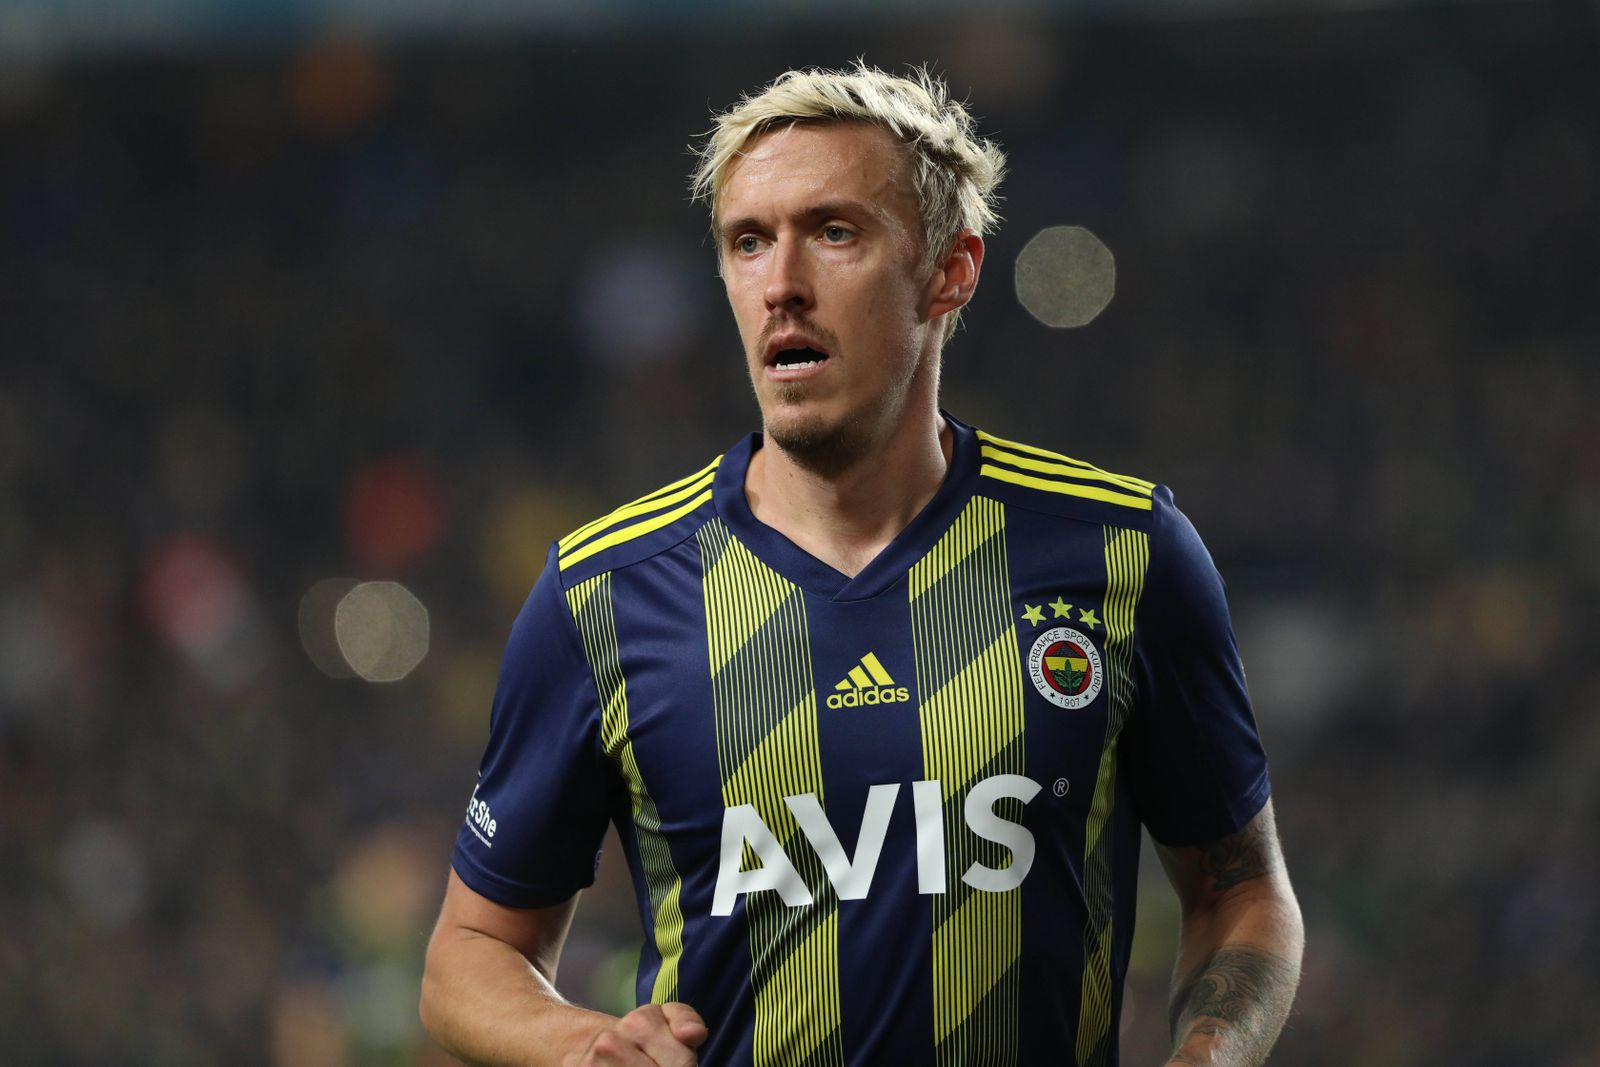 Max Kruse of Fenerbahce during the Turkish Super league football match between Fenerbahce and Basaksehir at Ulker Stadi